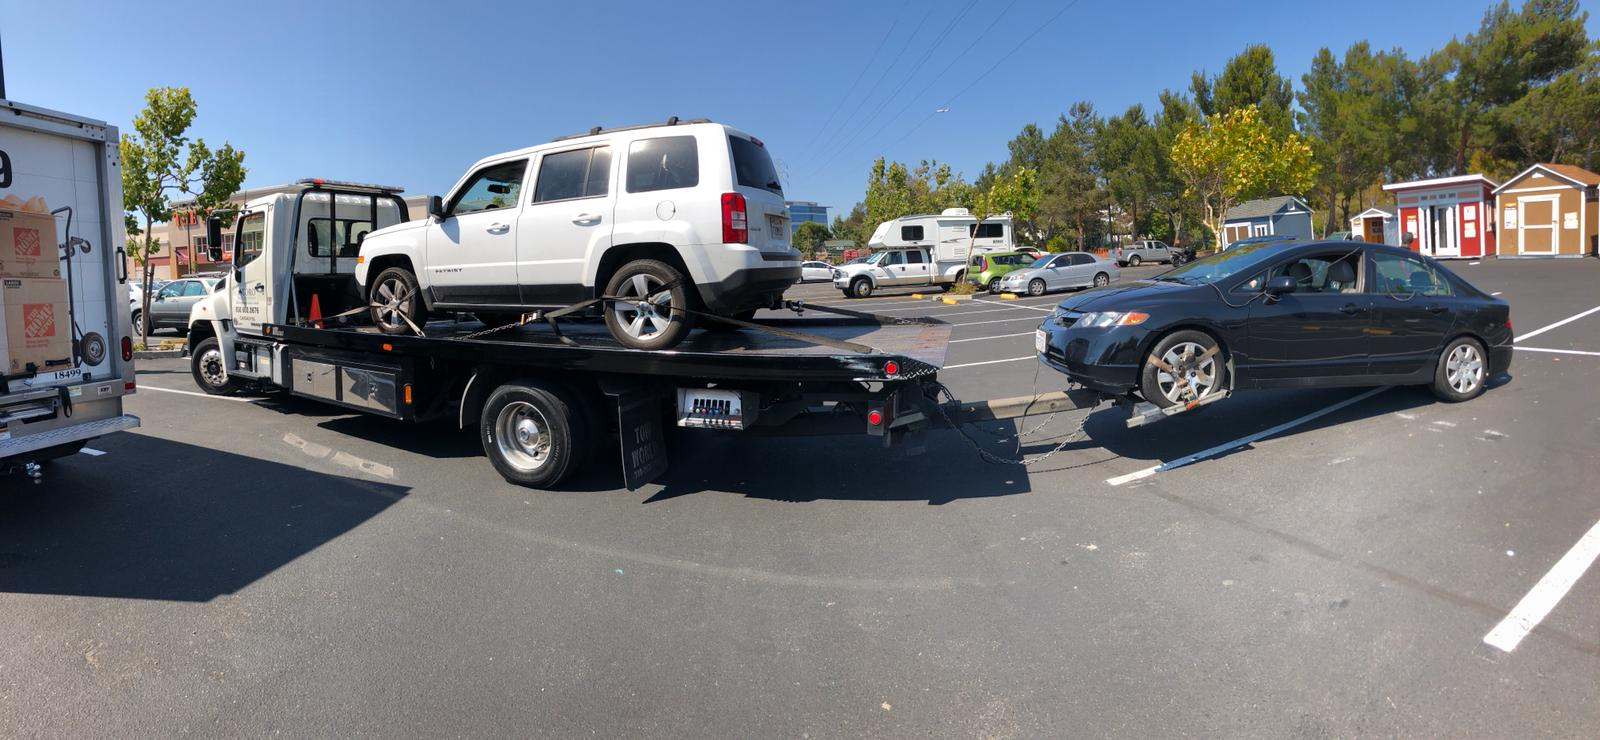 Towing Pros' at Your Service